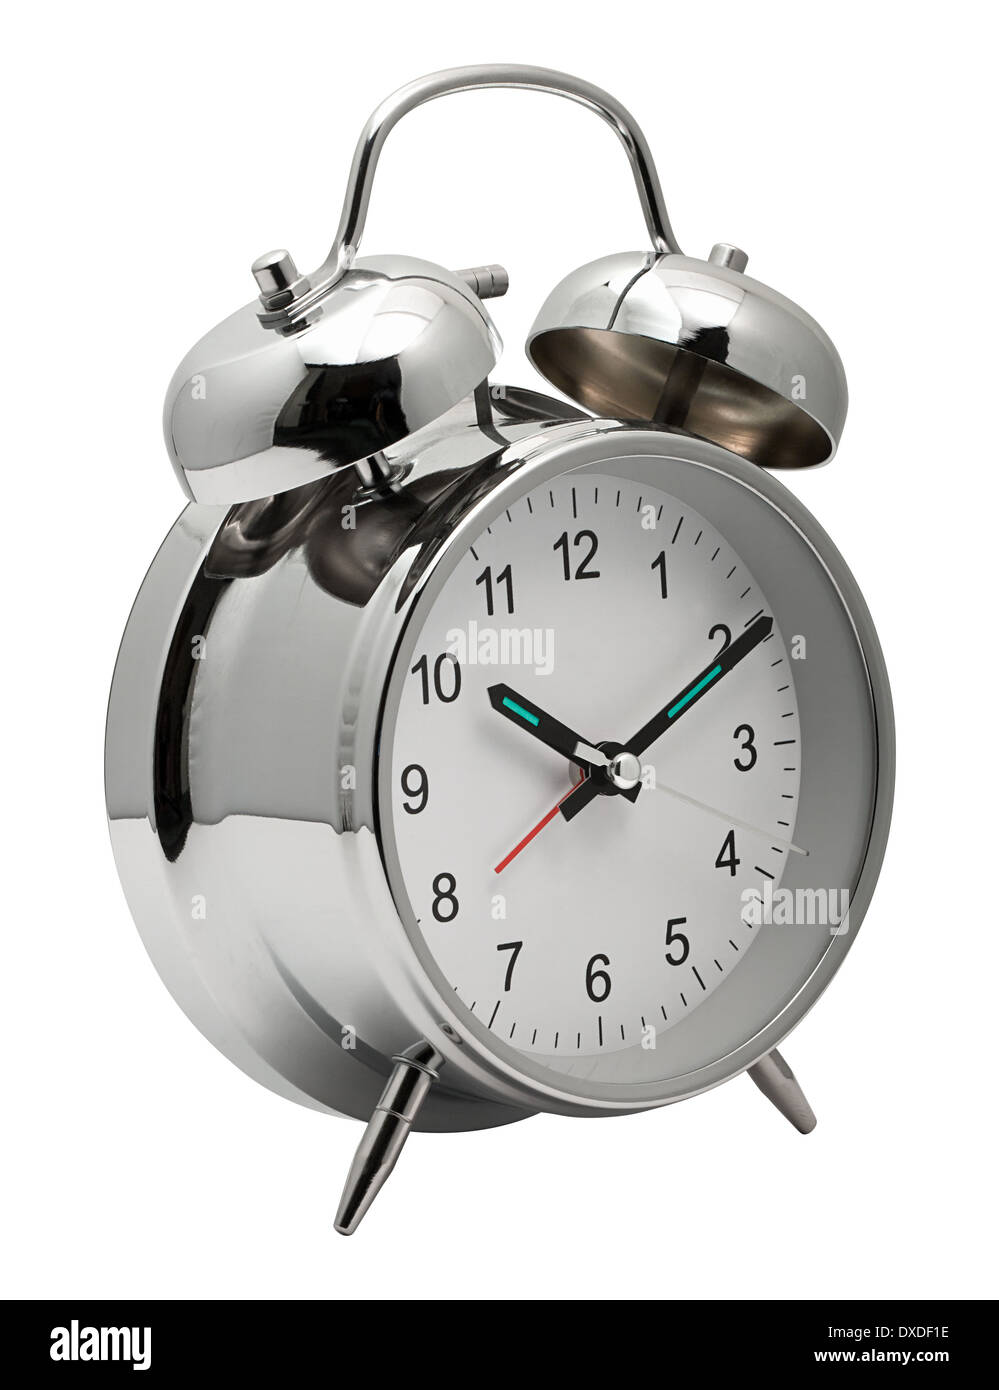 Classic silver chrome Clock with Alarm bells on top to get you out of bed Stock Photo